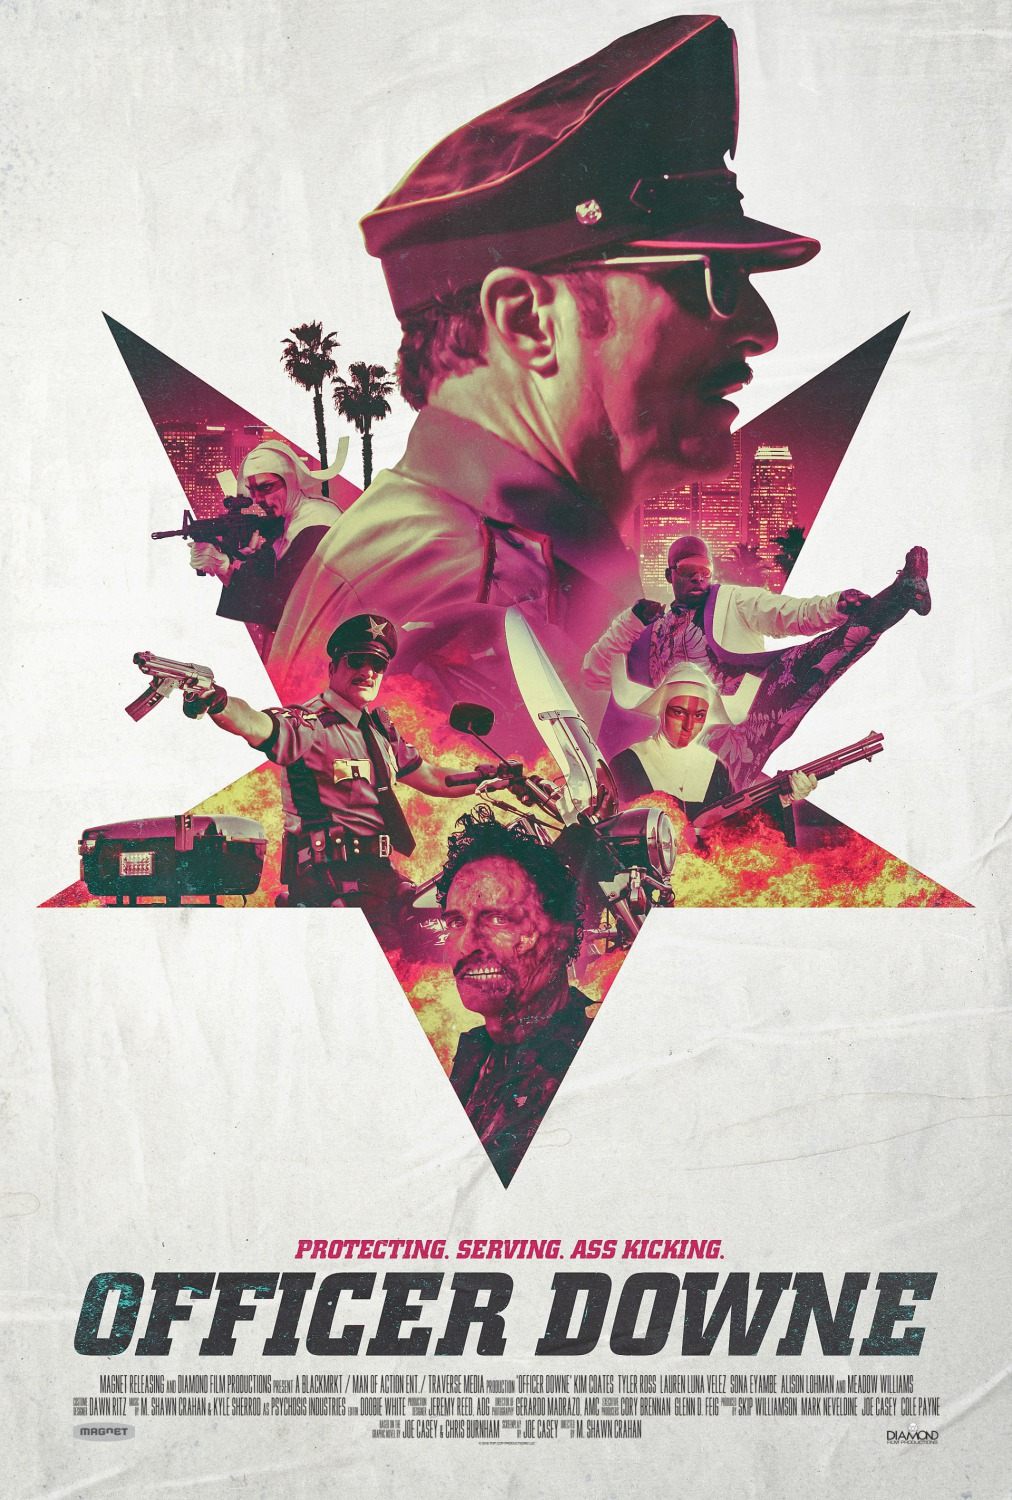 Télécharger Officer Downe DVDRIP VF